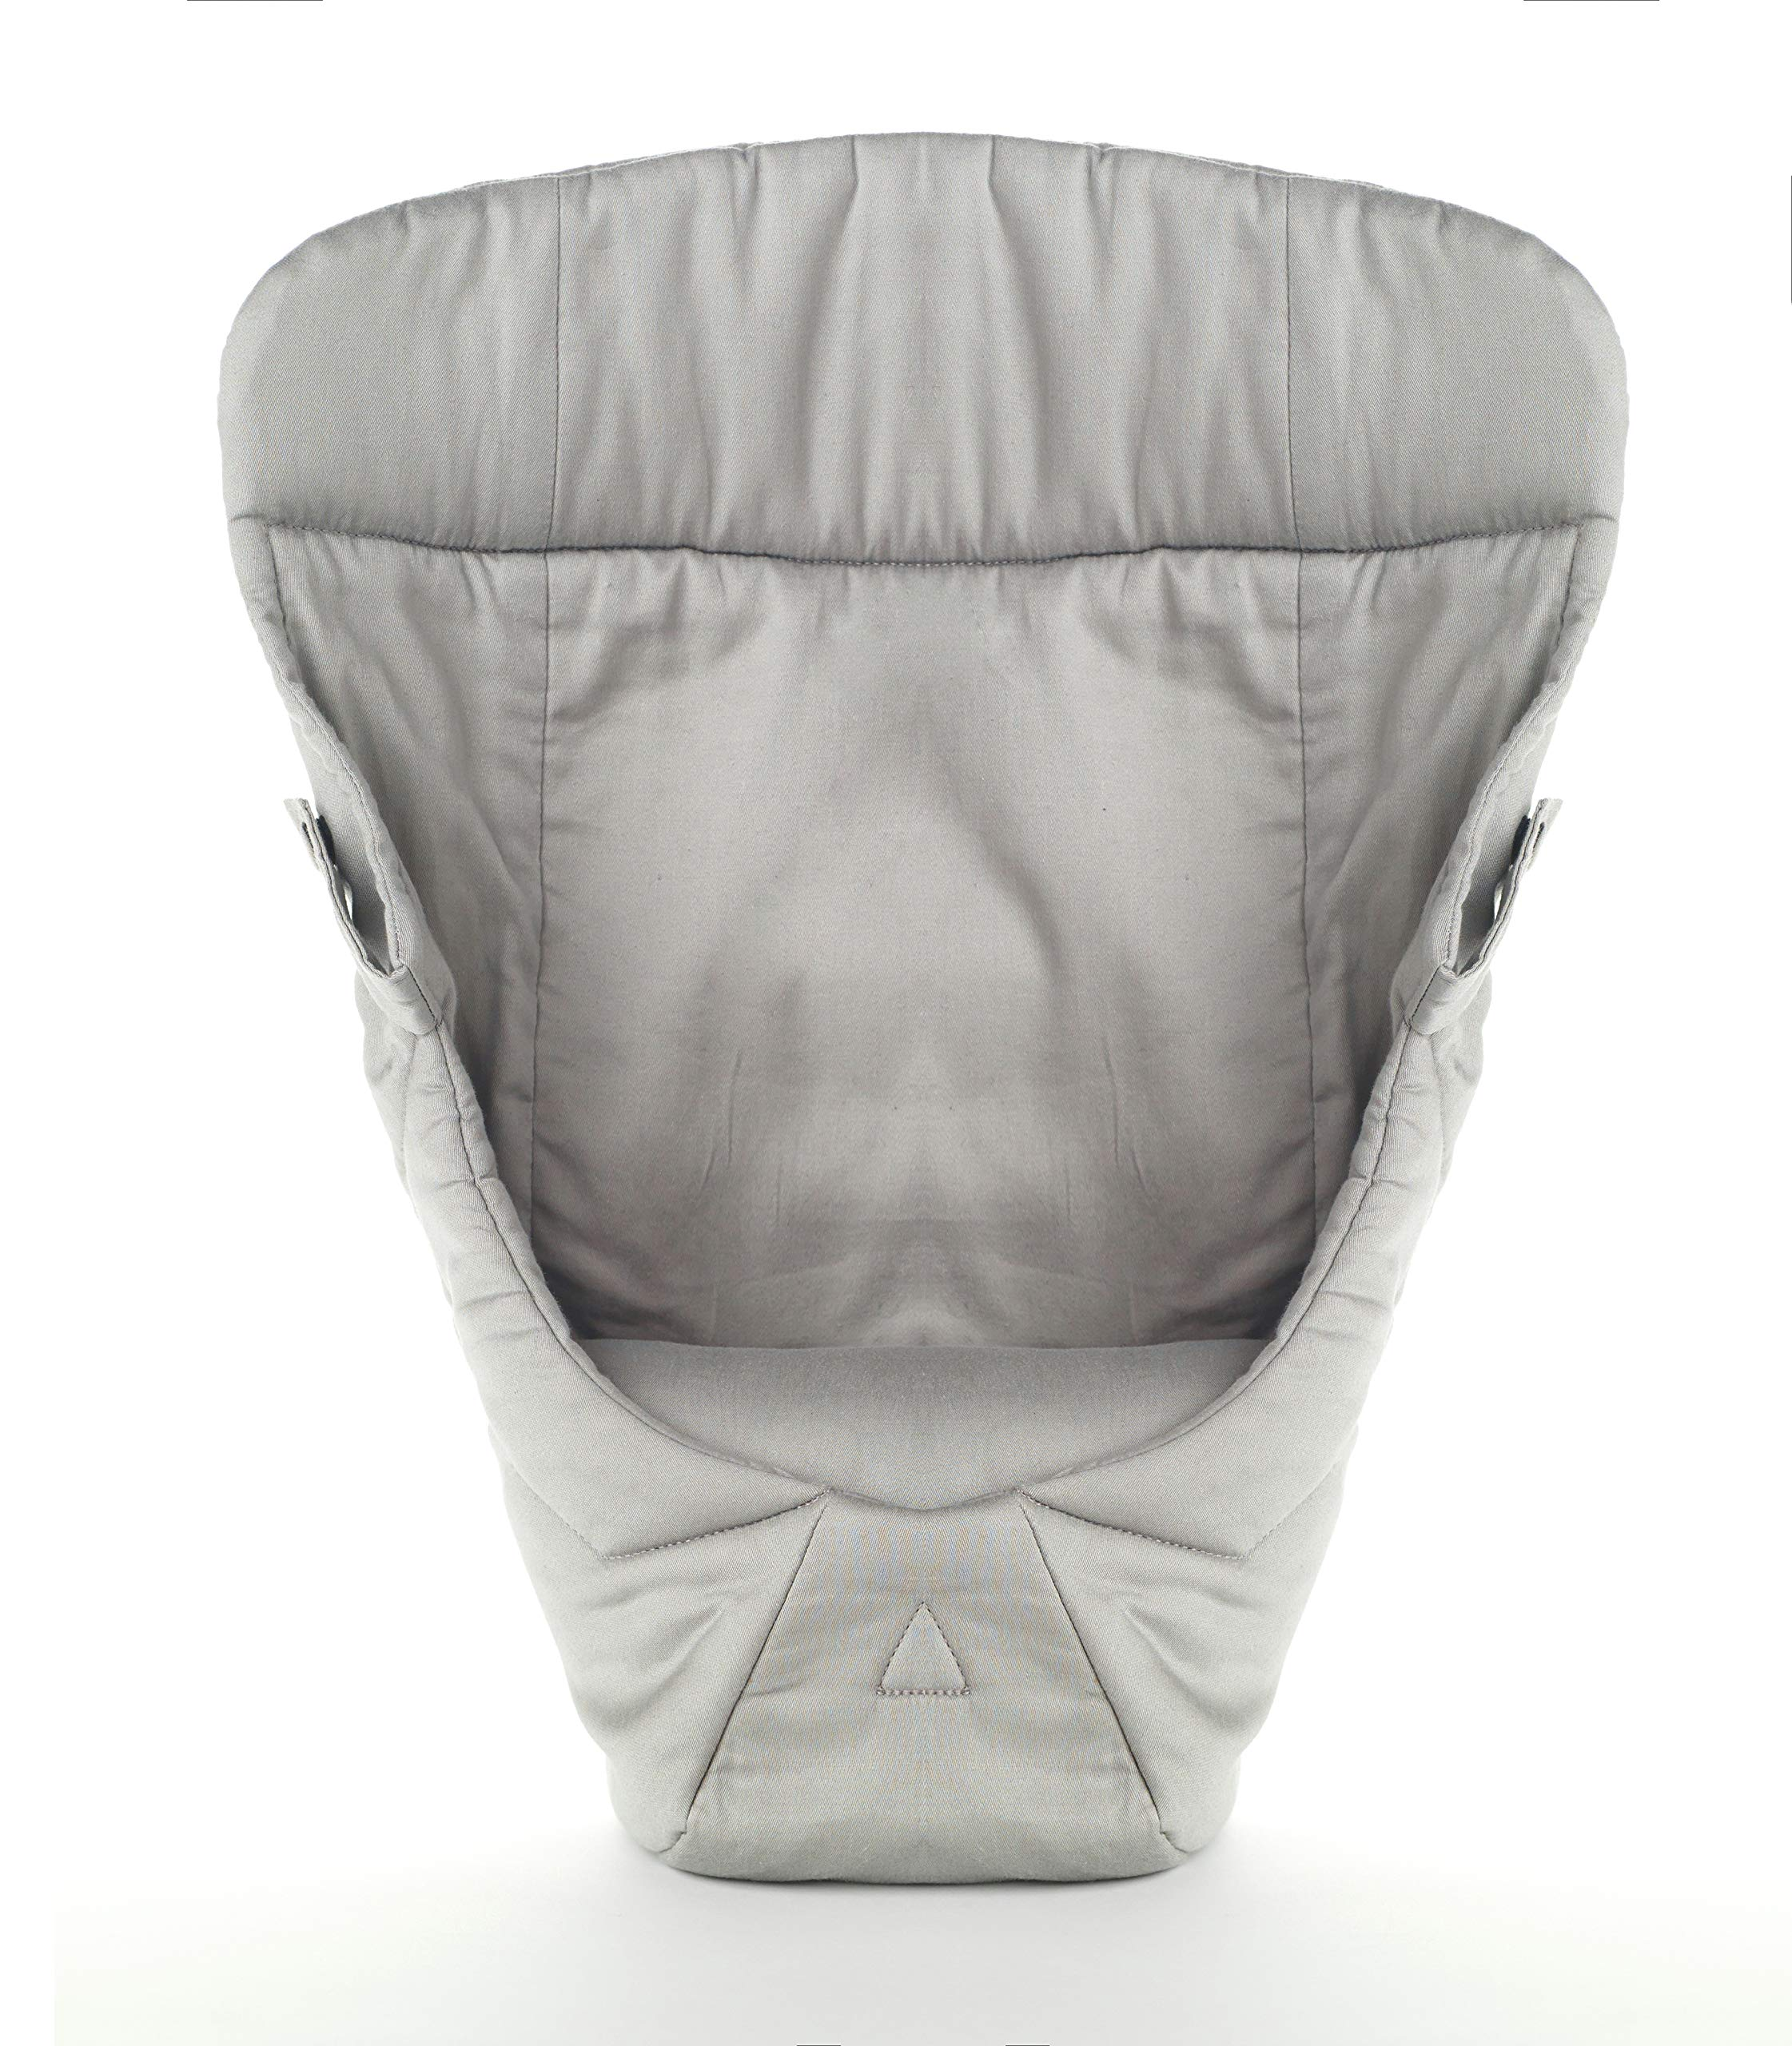 ERGObaby Infant insert for Baby Carrier Collection Original (3.2 - 5.kg), Cotton Grey Ergobaby Specially shaped pillow for supporting newborns in the frog-leg position Soft back panel for keeping baby's back slightly rounded in the carrier Head and neck support 3